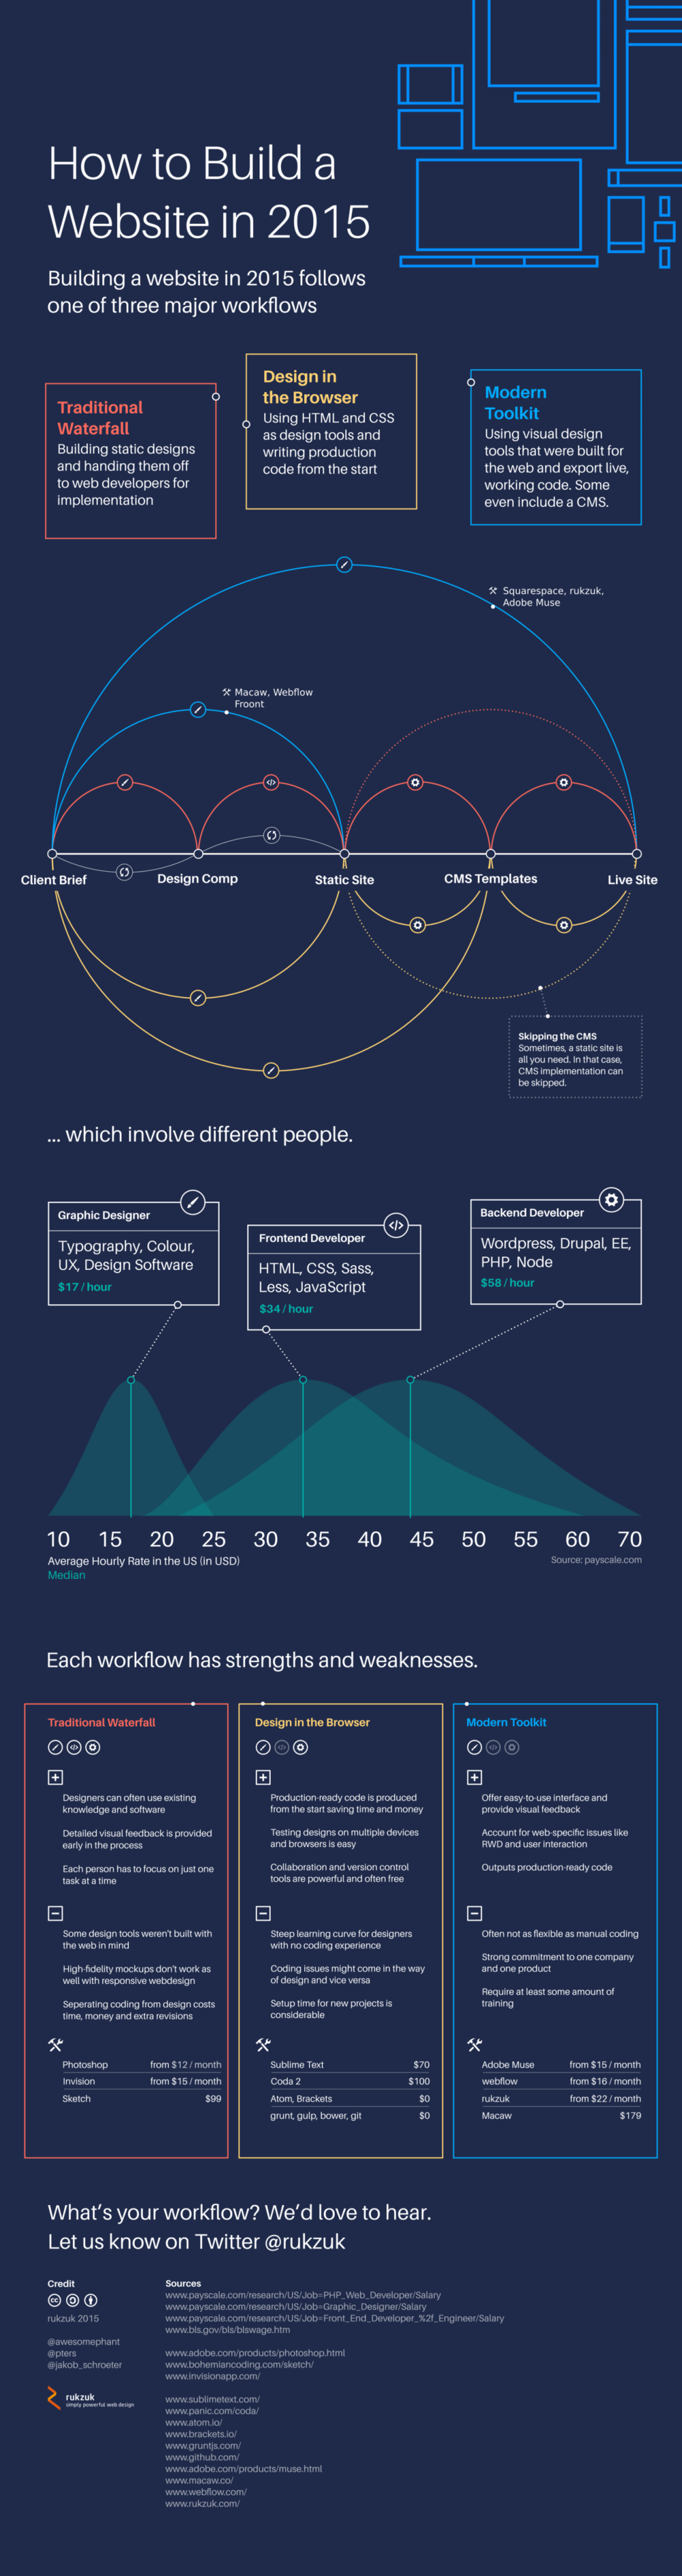 How to Build a Website in 2015 infographic